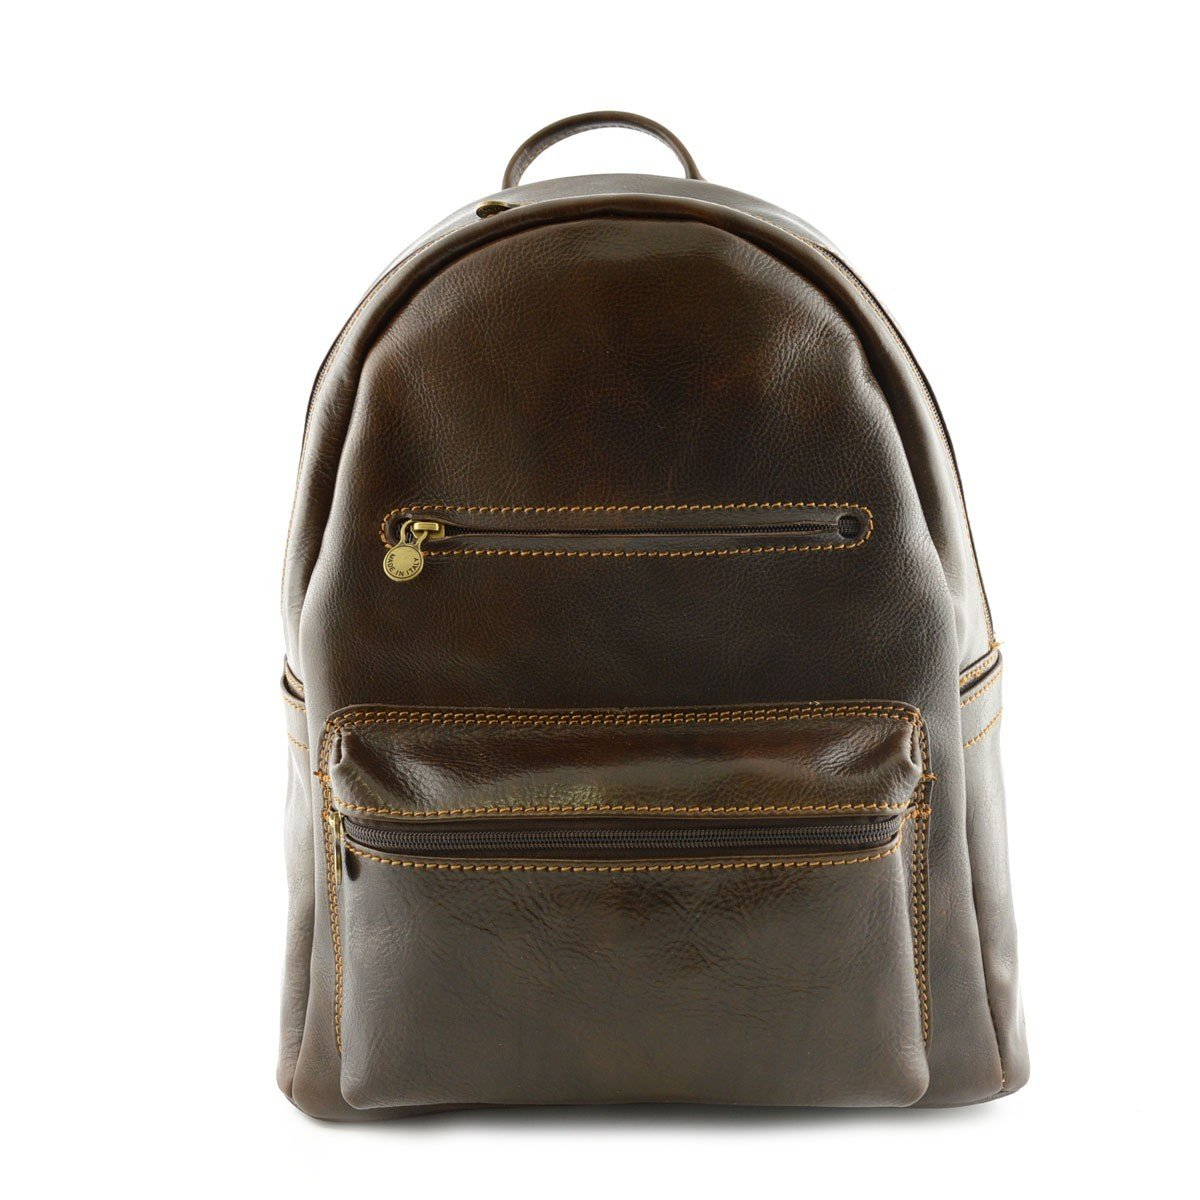 Made In Italy Leather Backpack Color Dark Brown - Backpack   B0157PE9ZO